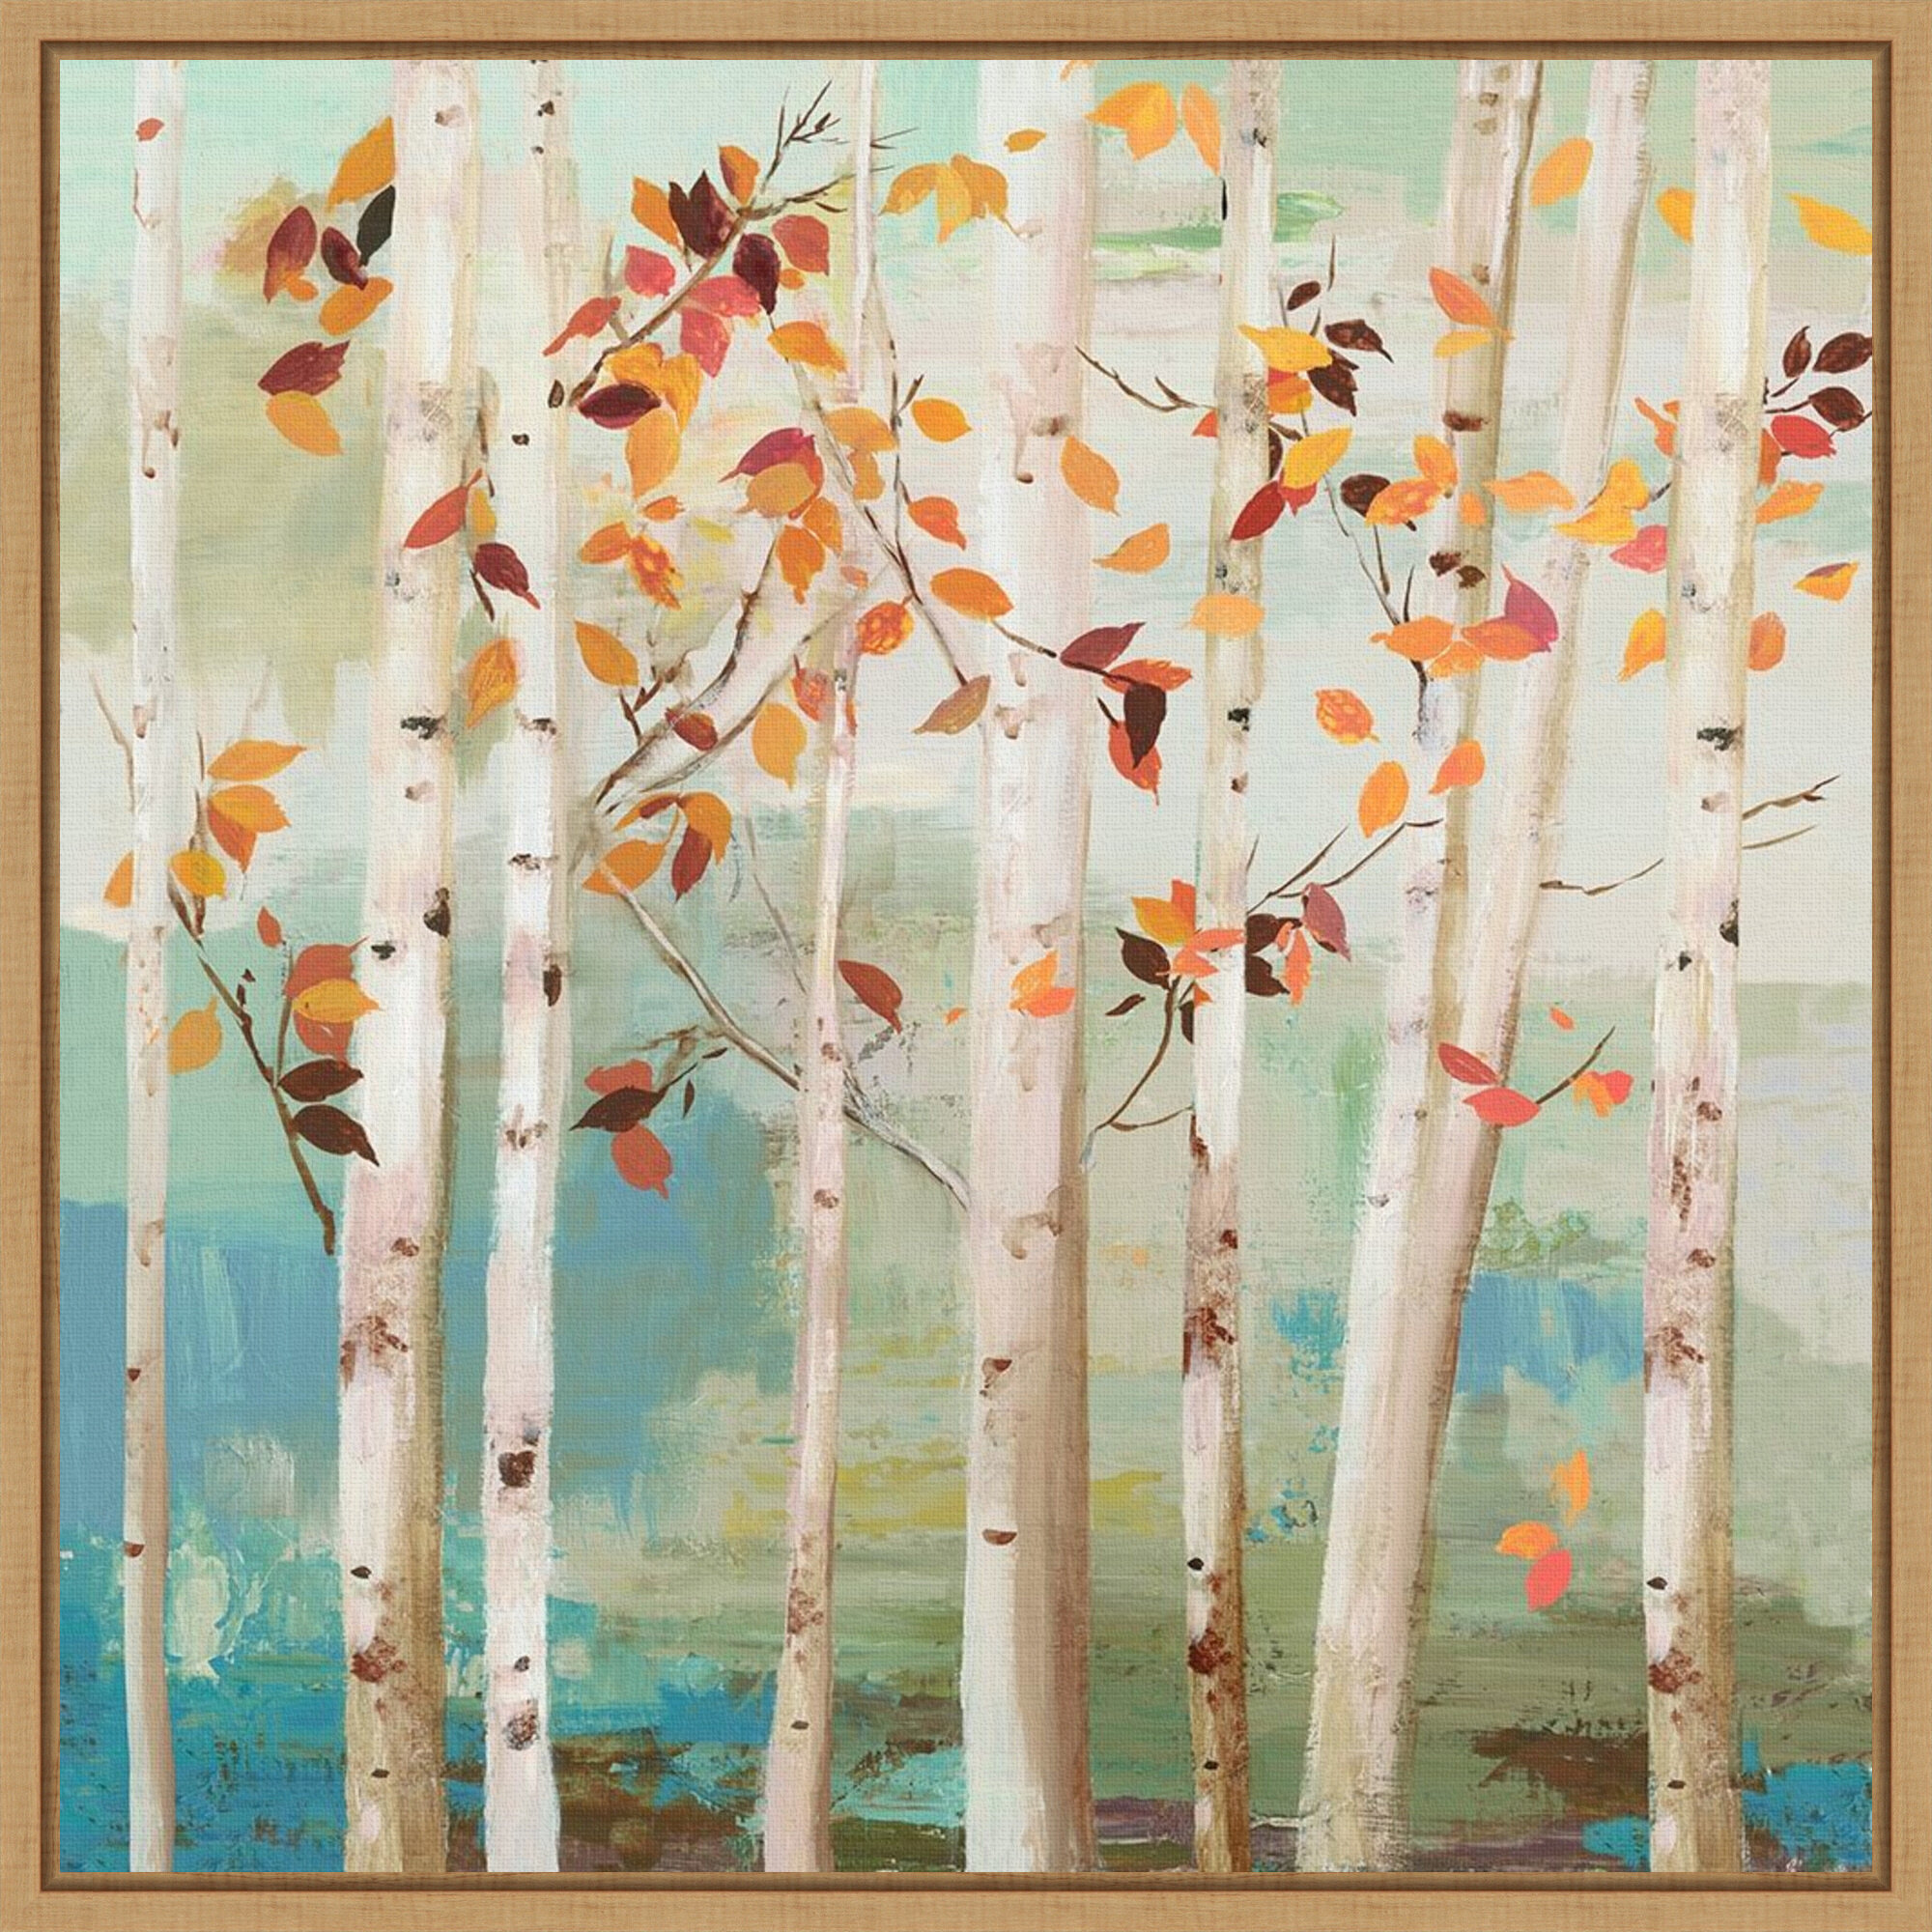 Red Barrel Studio Fall Birch Trees By Allison Pearce Floater Frame Painting Print On Canvas Wayfair